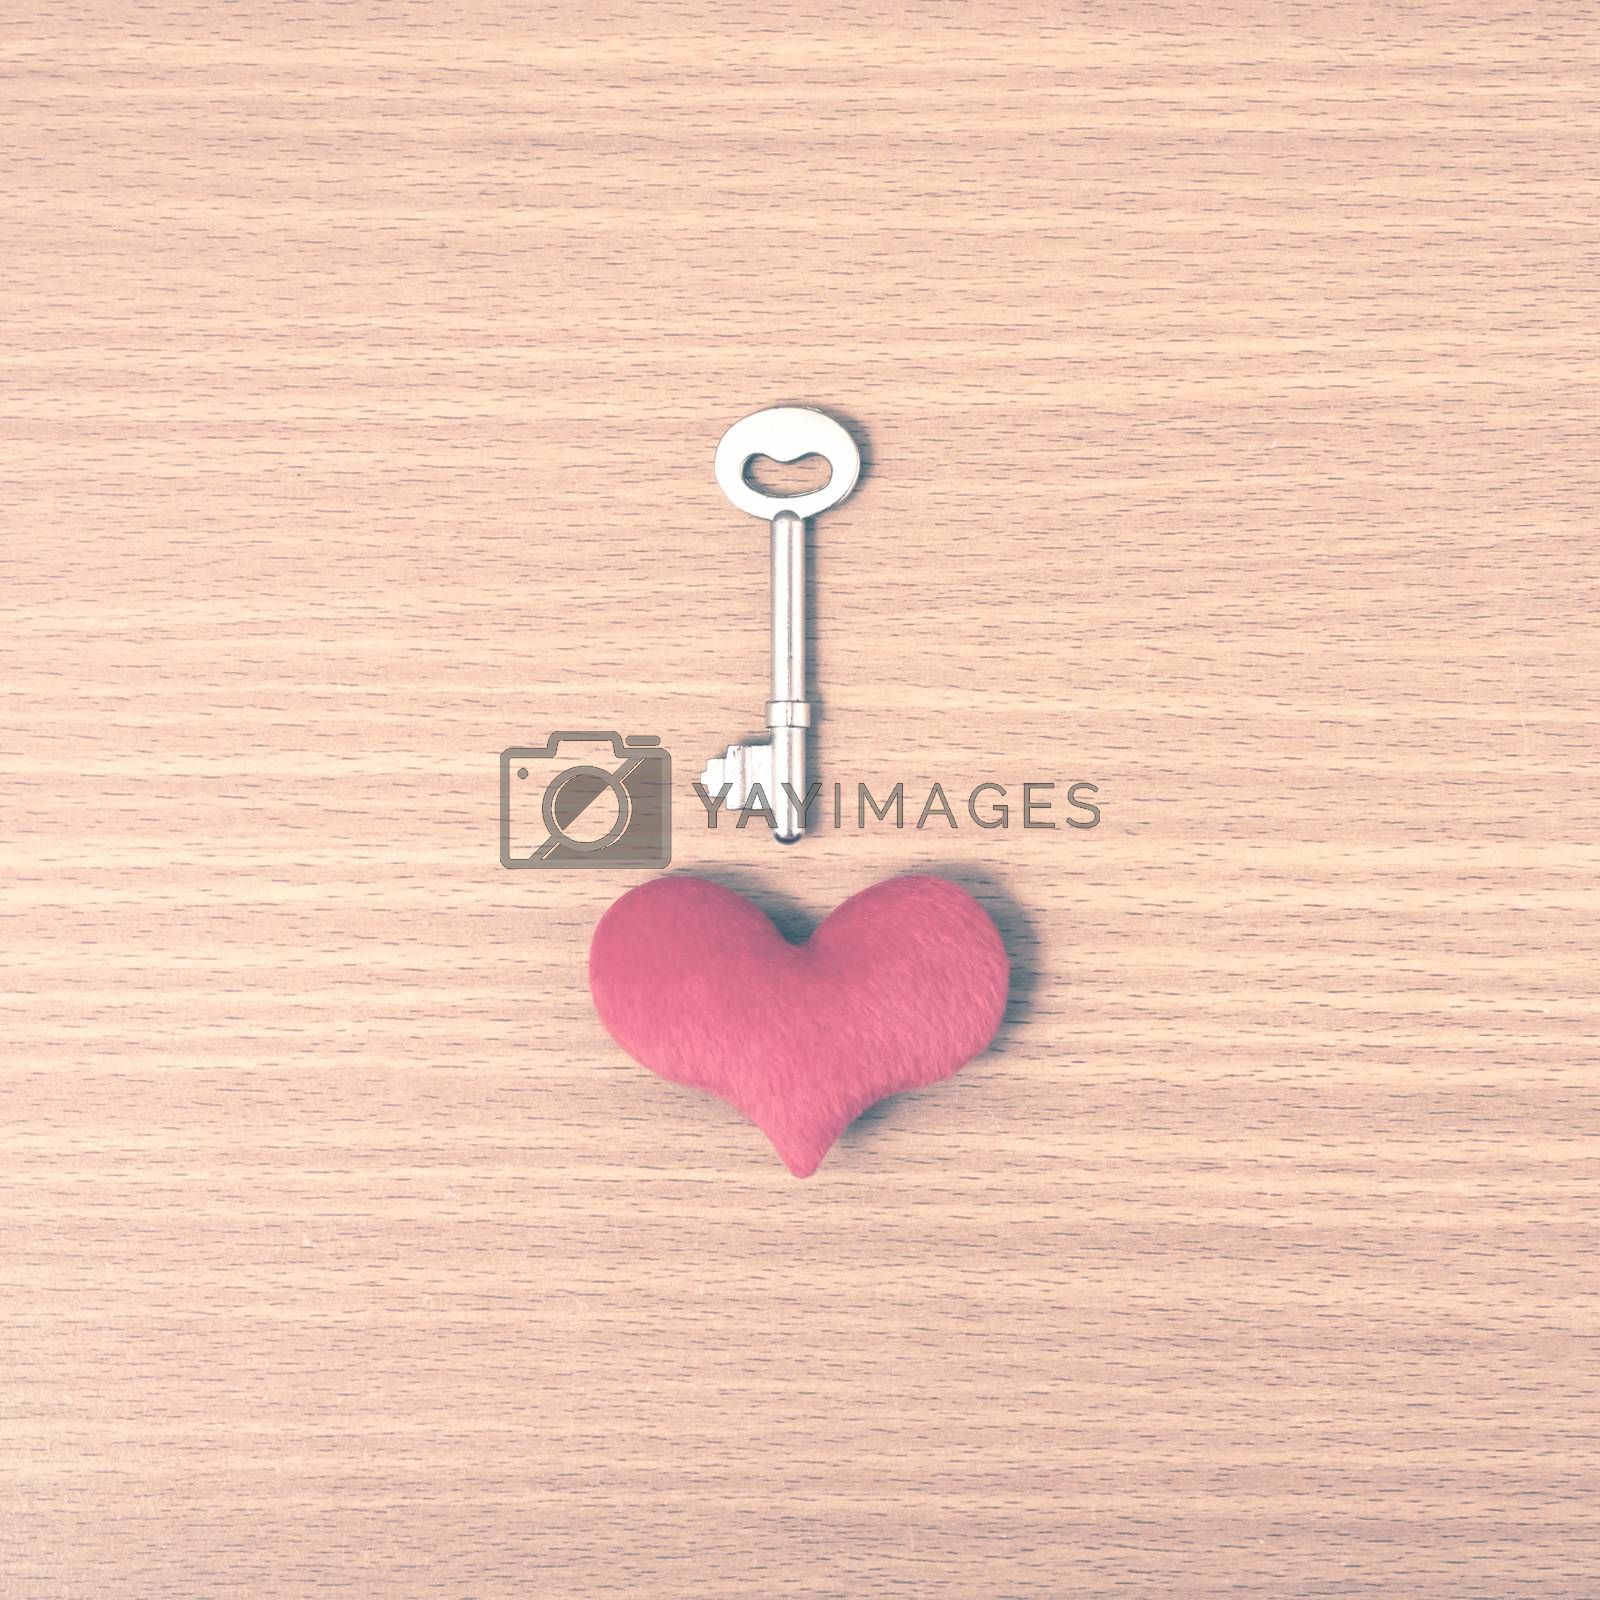 red heart with key on wood table background vintage style